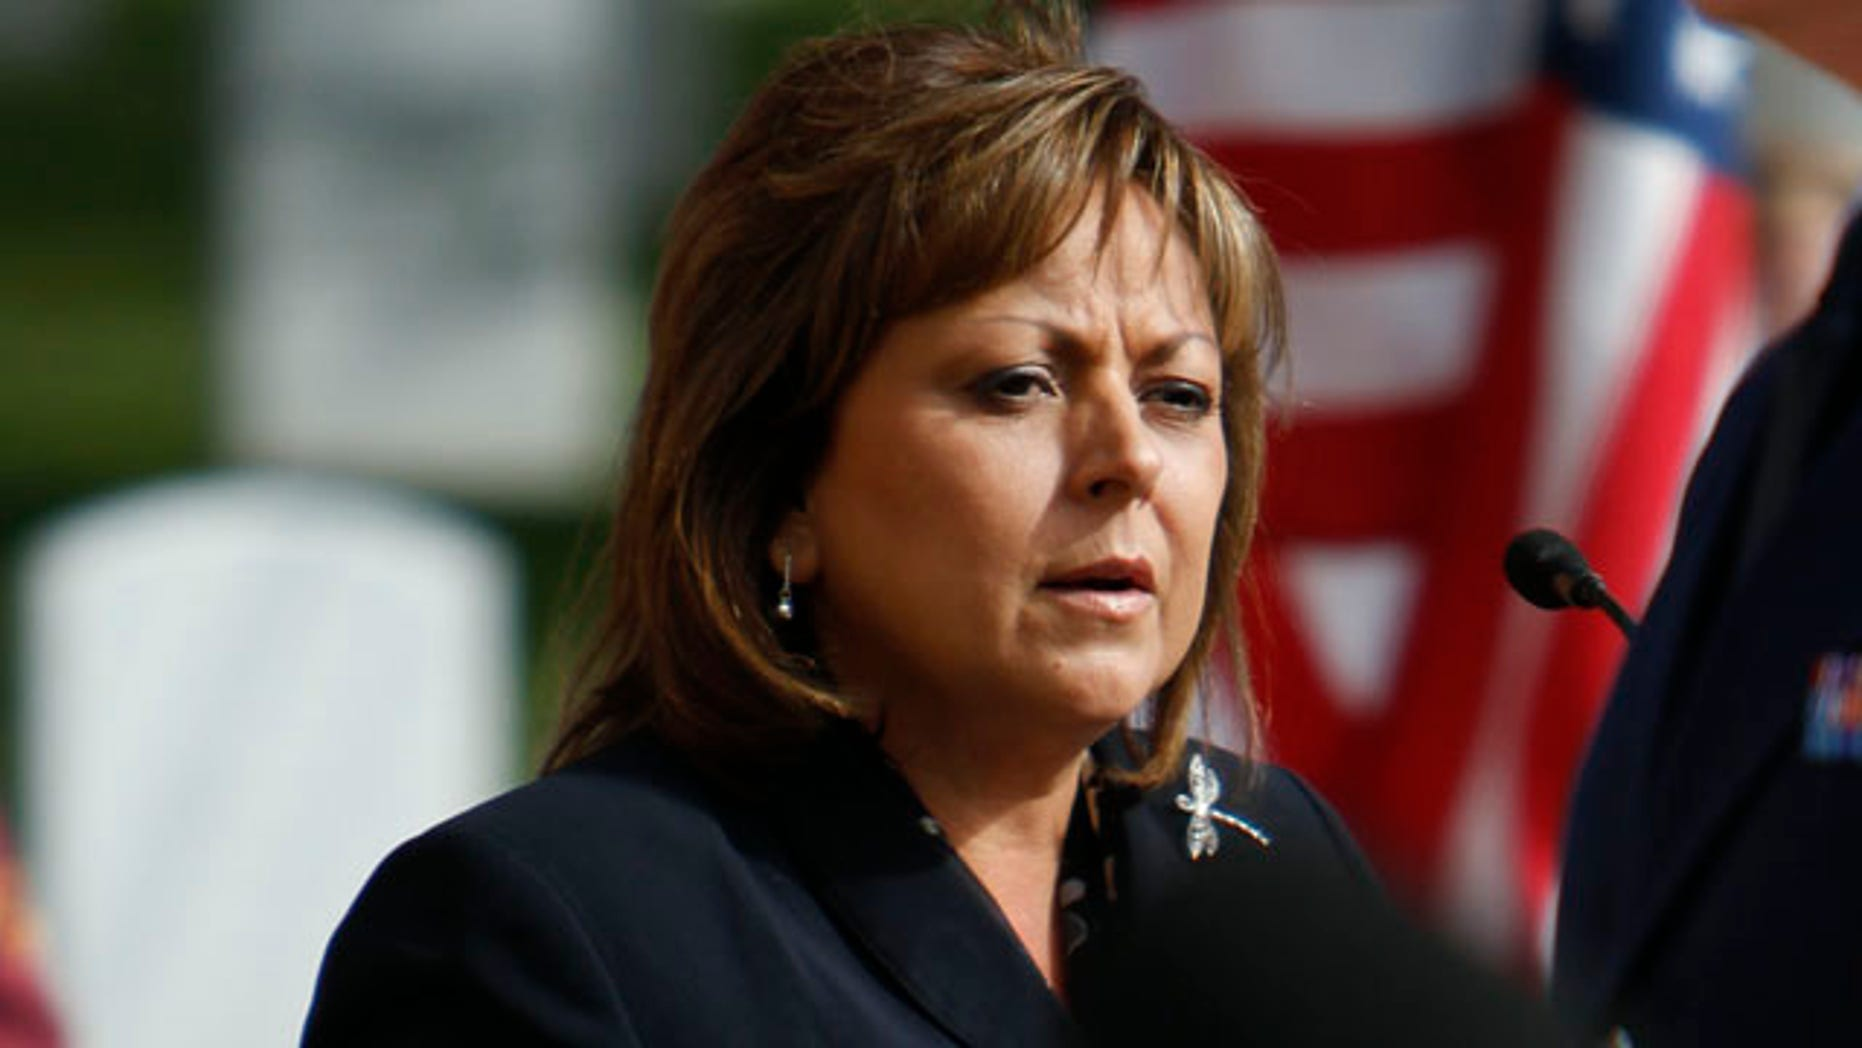 In this Tuesday Nov. 1, 2011 photo, Gov. Susana Martinez speaks during the memorial service for 10 veterans at the Santa Fe National Cemetery as part of the Missing in America Project. According to the web site, the purpose of the MIA Project is to locate, identify and inter the unclaimed cremated remains of American veterans through the joint efforts of private, state and federal organizations. The services were in memory of retired Col. John Garnett Coughlin, retired Col. Jackson Evert Shirley, retired Lt. Edward Grimm Lucius, Chief Petty Officer Donald Claire Smith, Petty Officer 2nd Class Milton Vincin Burroughs, Technician Third Class Gerald Edwin Huber, Technician Third Class Richard Landrum Thomas, Airman 1st Class Charles Thomas Stewart, Pvt. John L. Craft, and Pvt. Hanry D. Nichols. (AP Photo/The Santa Fe New Mexican, Luis Sanchez Saturno)